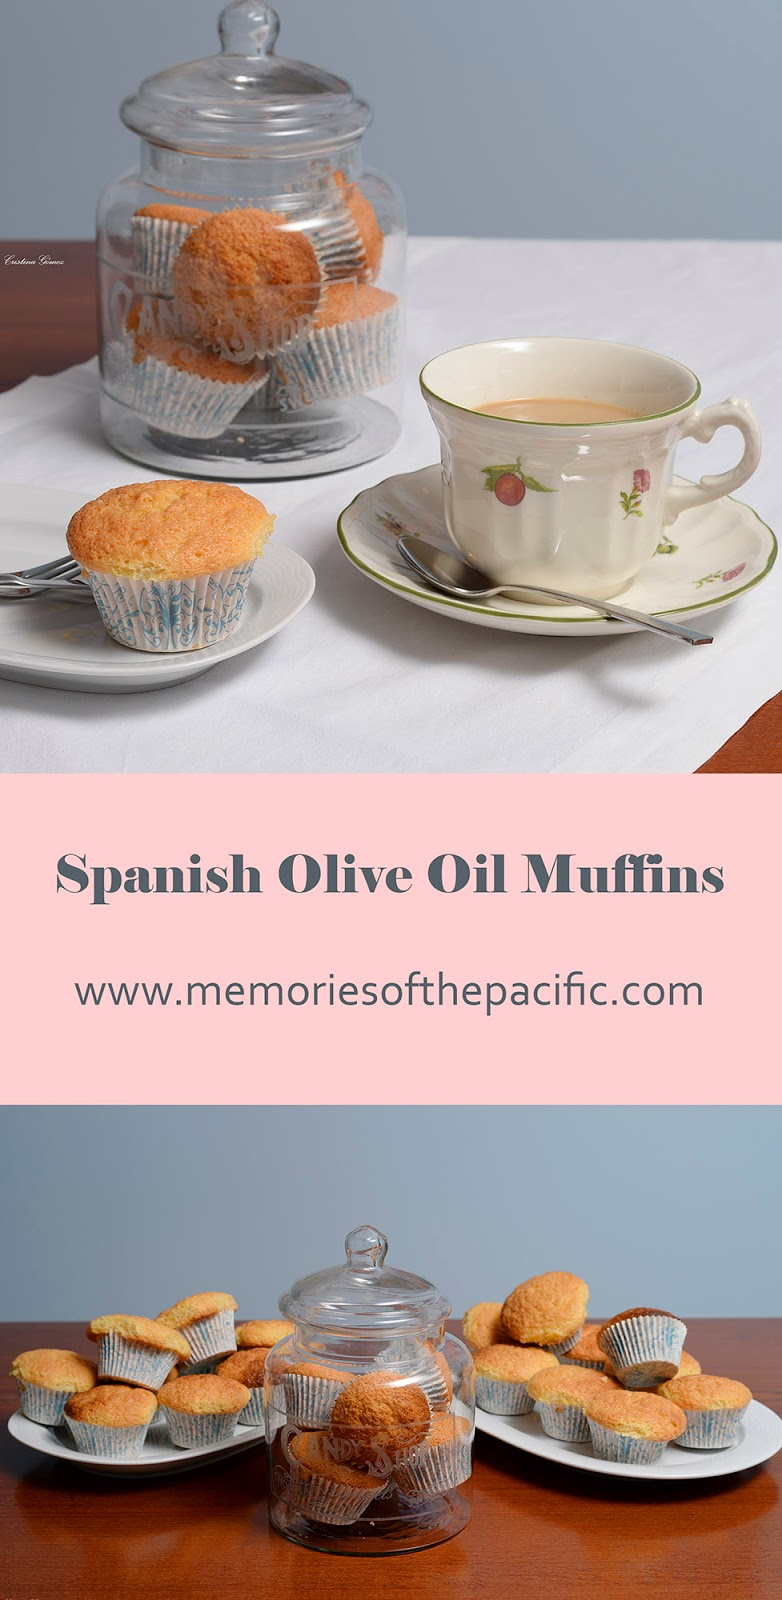 homemade muffins olive oil spanish magdalena casera